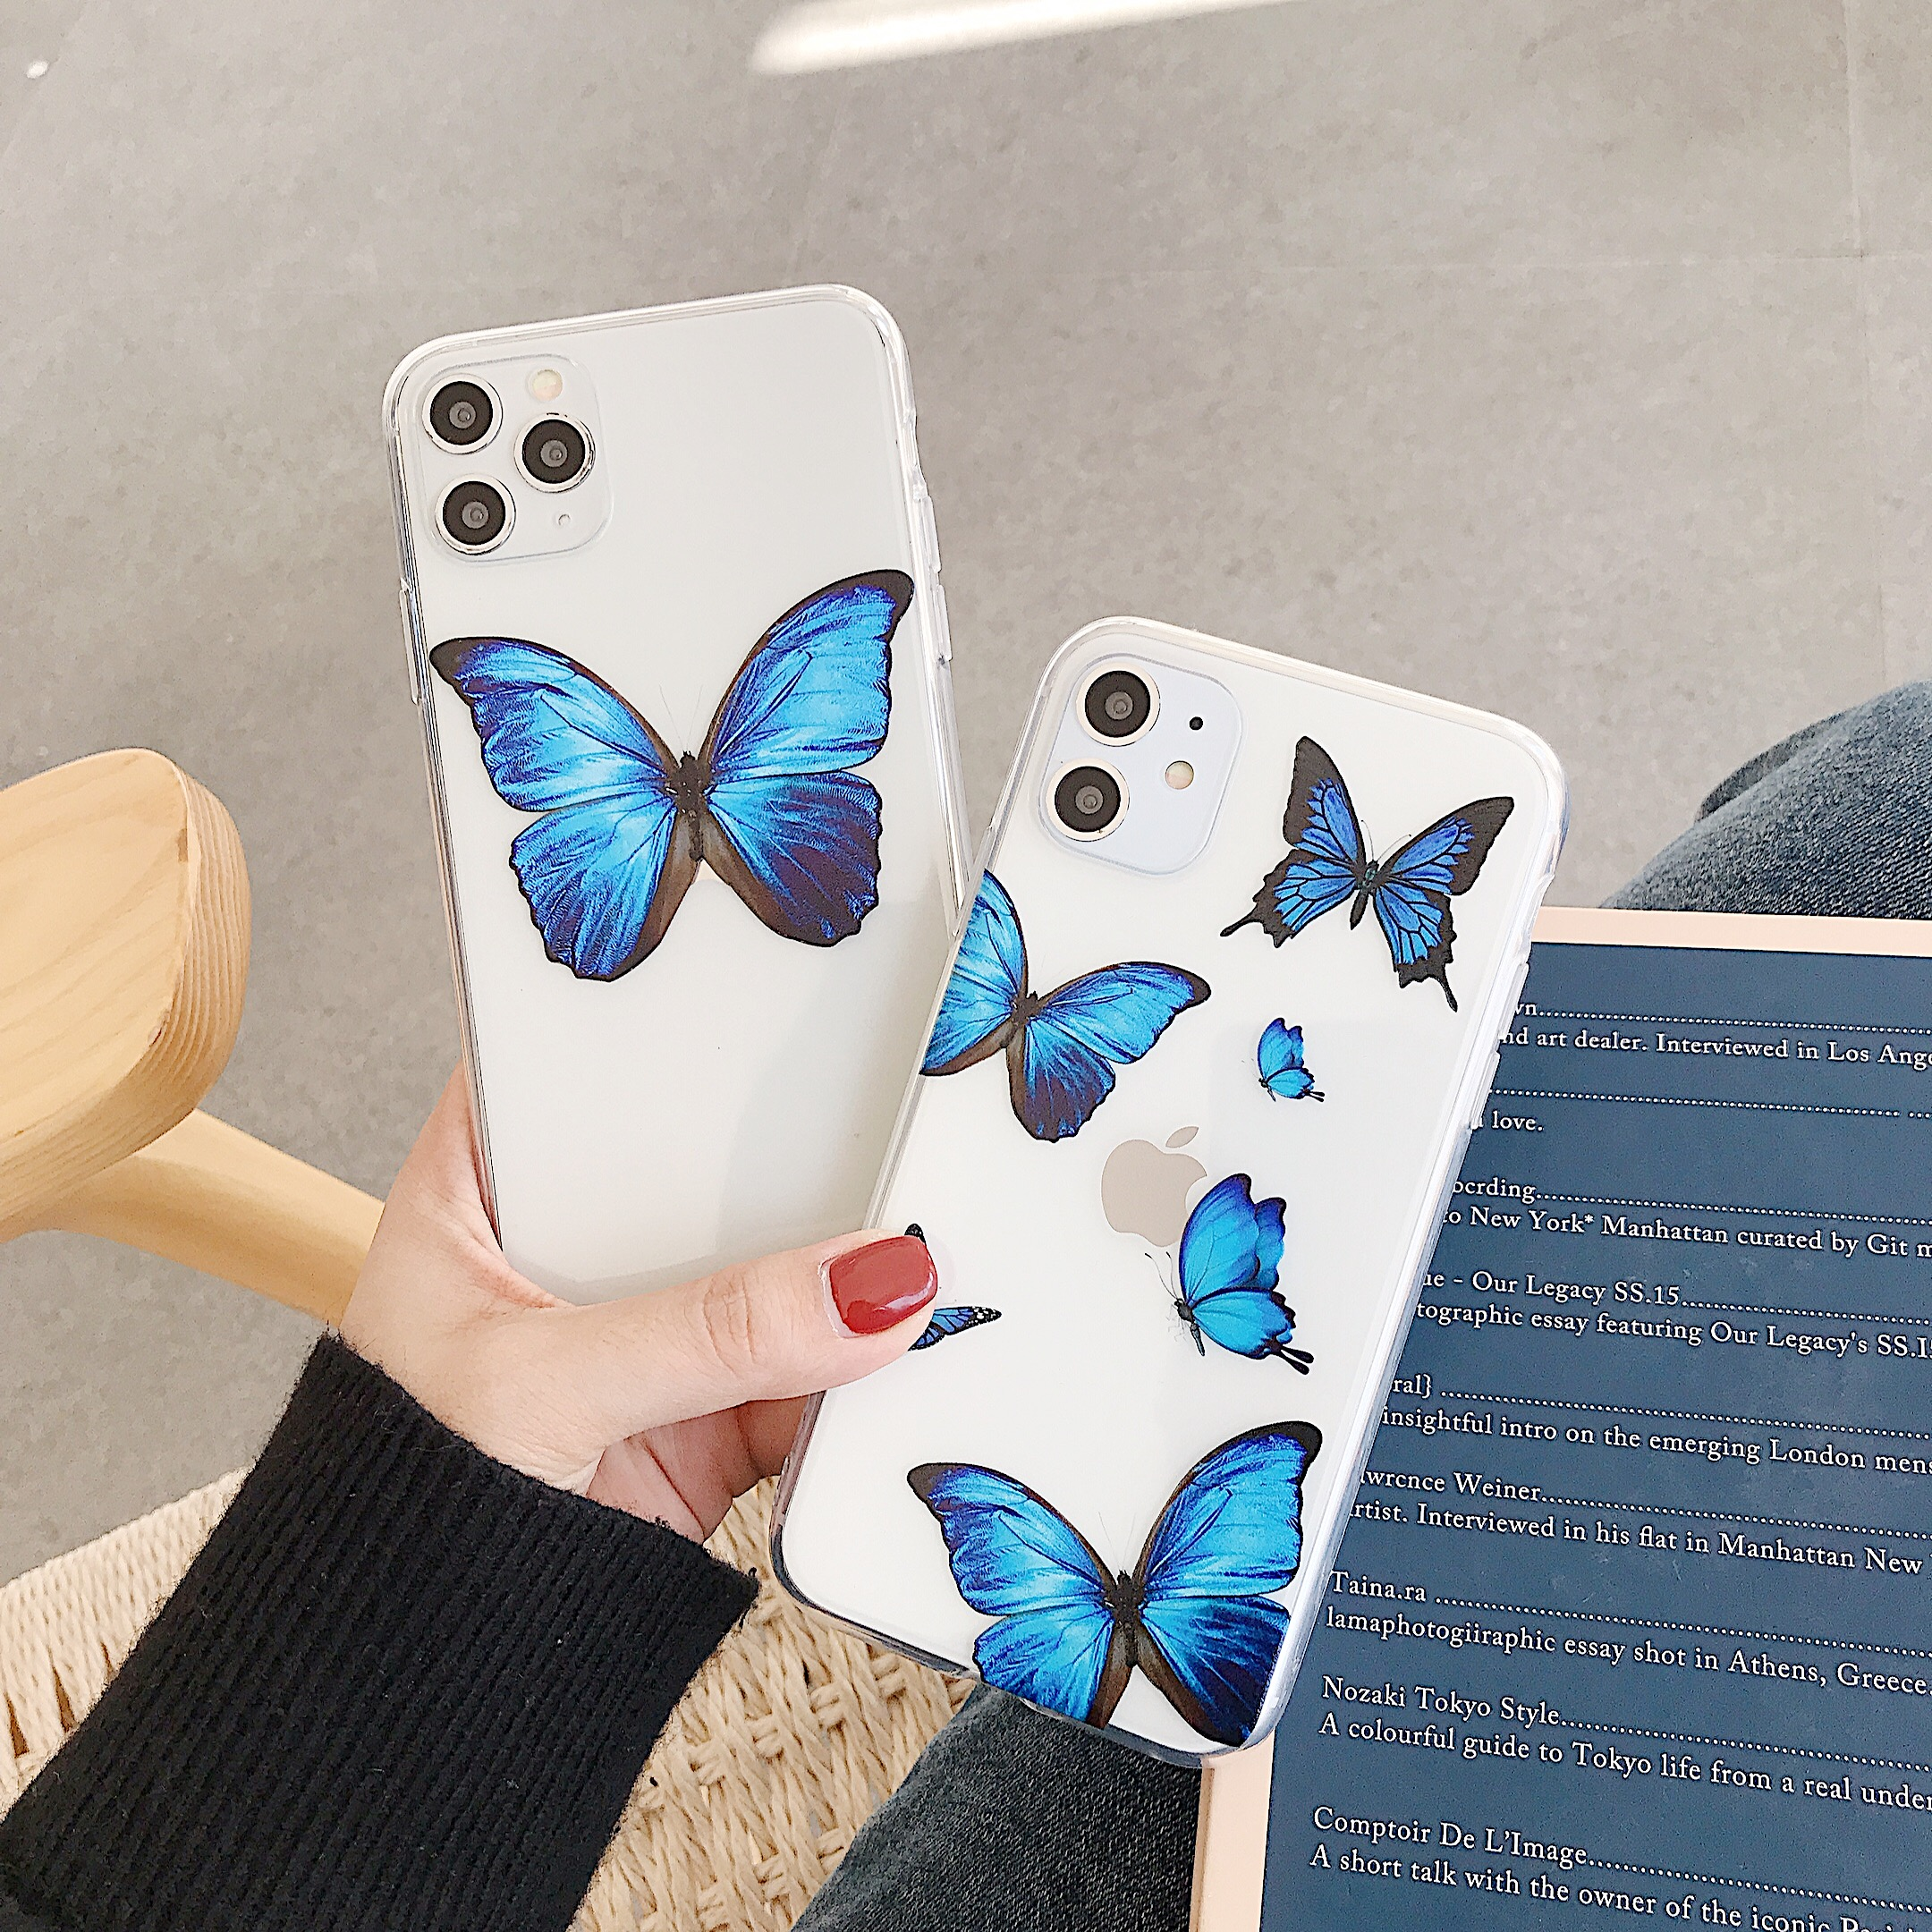 Cute Butterfly Blue Phone Case For Iphone 12 11 Pro Max Cases Clear Tpu Soft For Iphone Xr Xs Max X 7 8 Plus Fundas Coque Cover Phone Case Covers Aliexpress